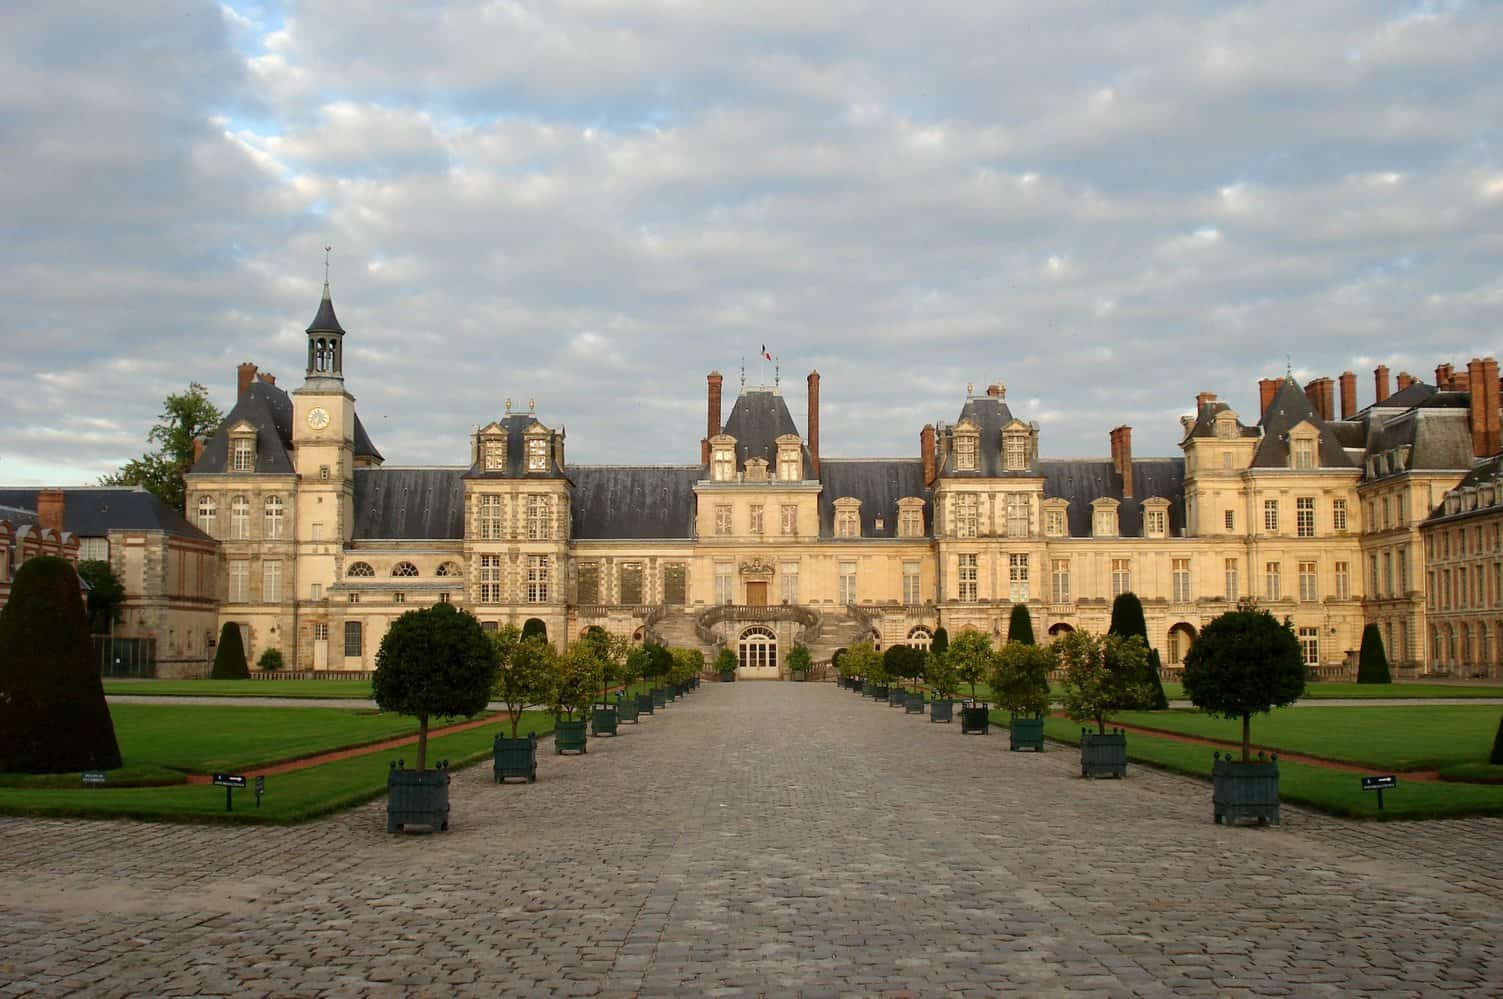 INSEAD Business School, Fontainebleau, France | EDUopinions